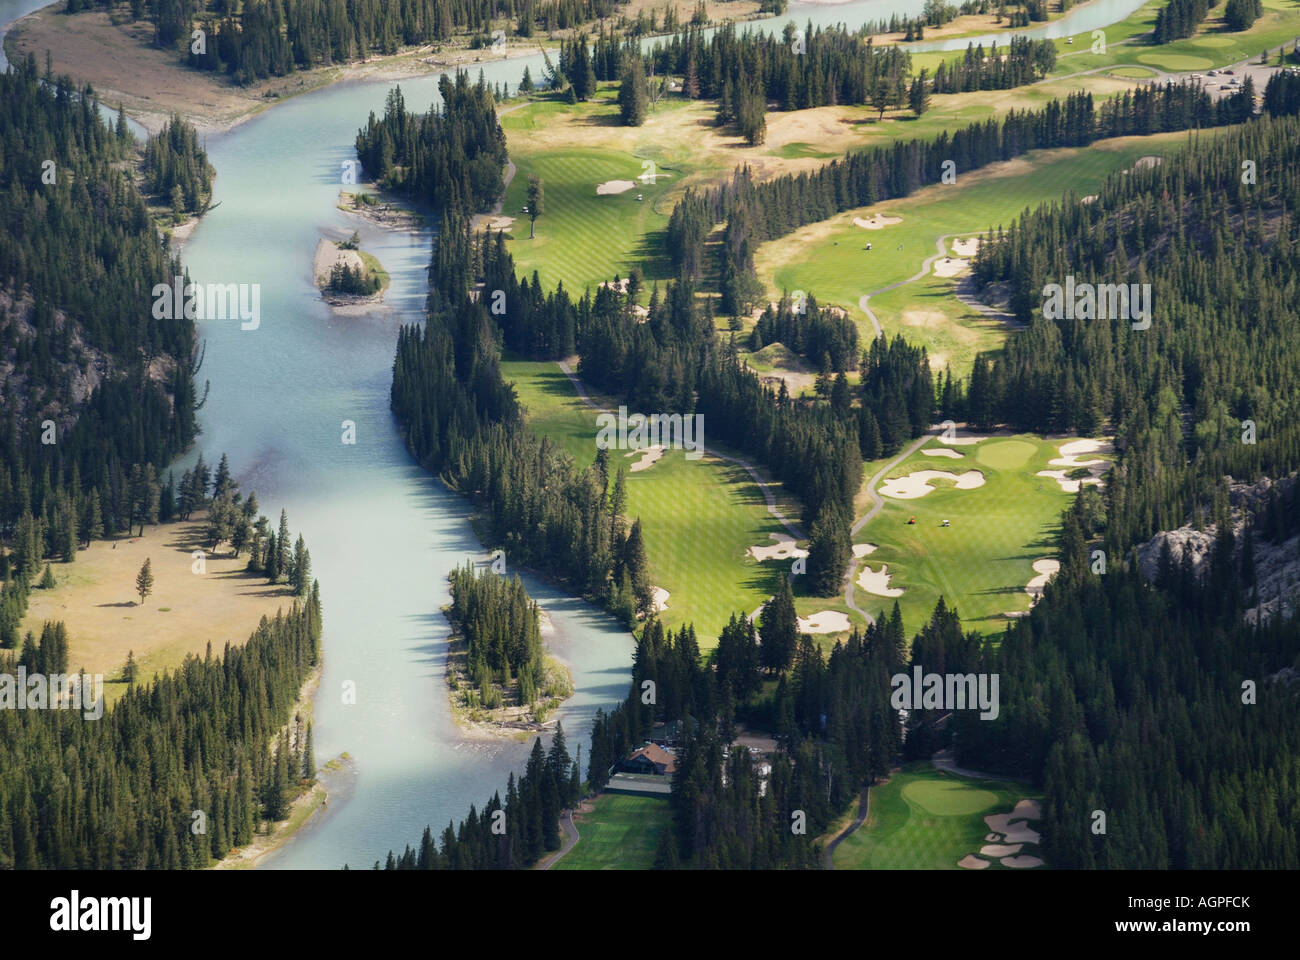 Banff Springs Golf Course at Banff National Park one of the world s most scenic courses in Alberta Canada - Stock Image